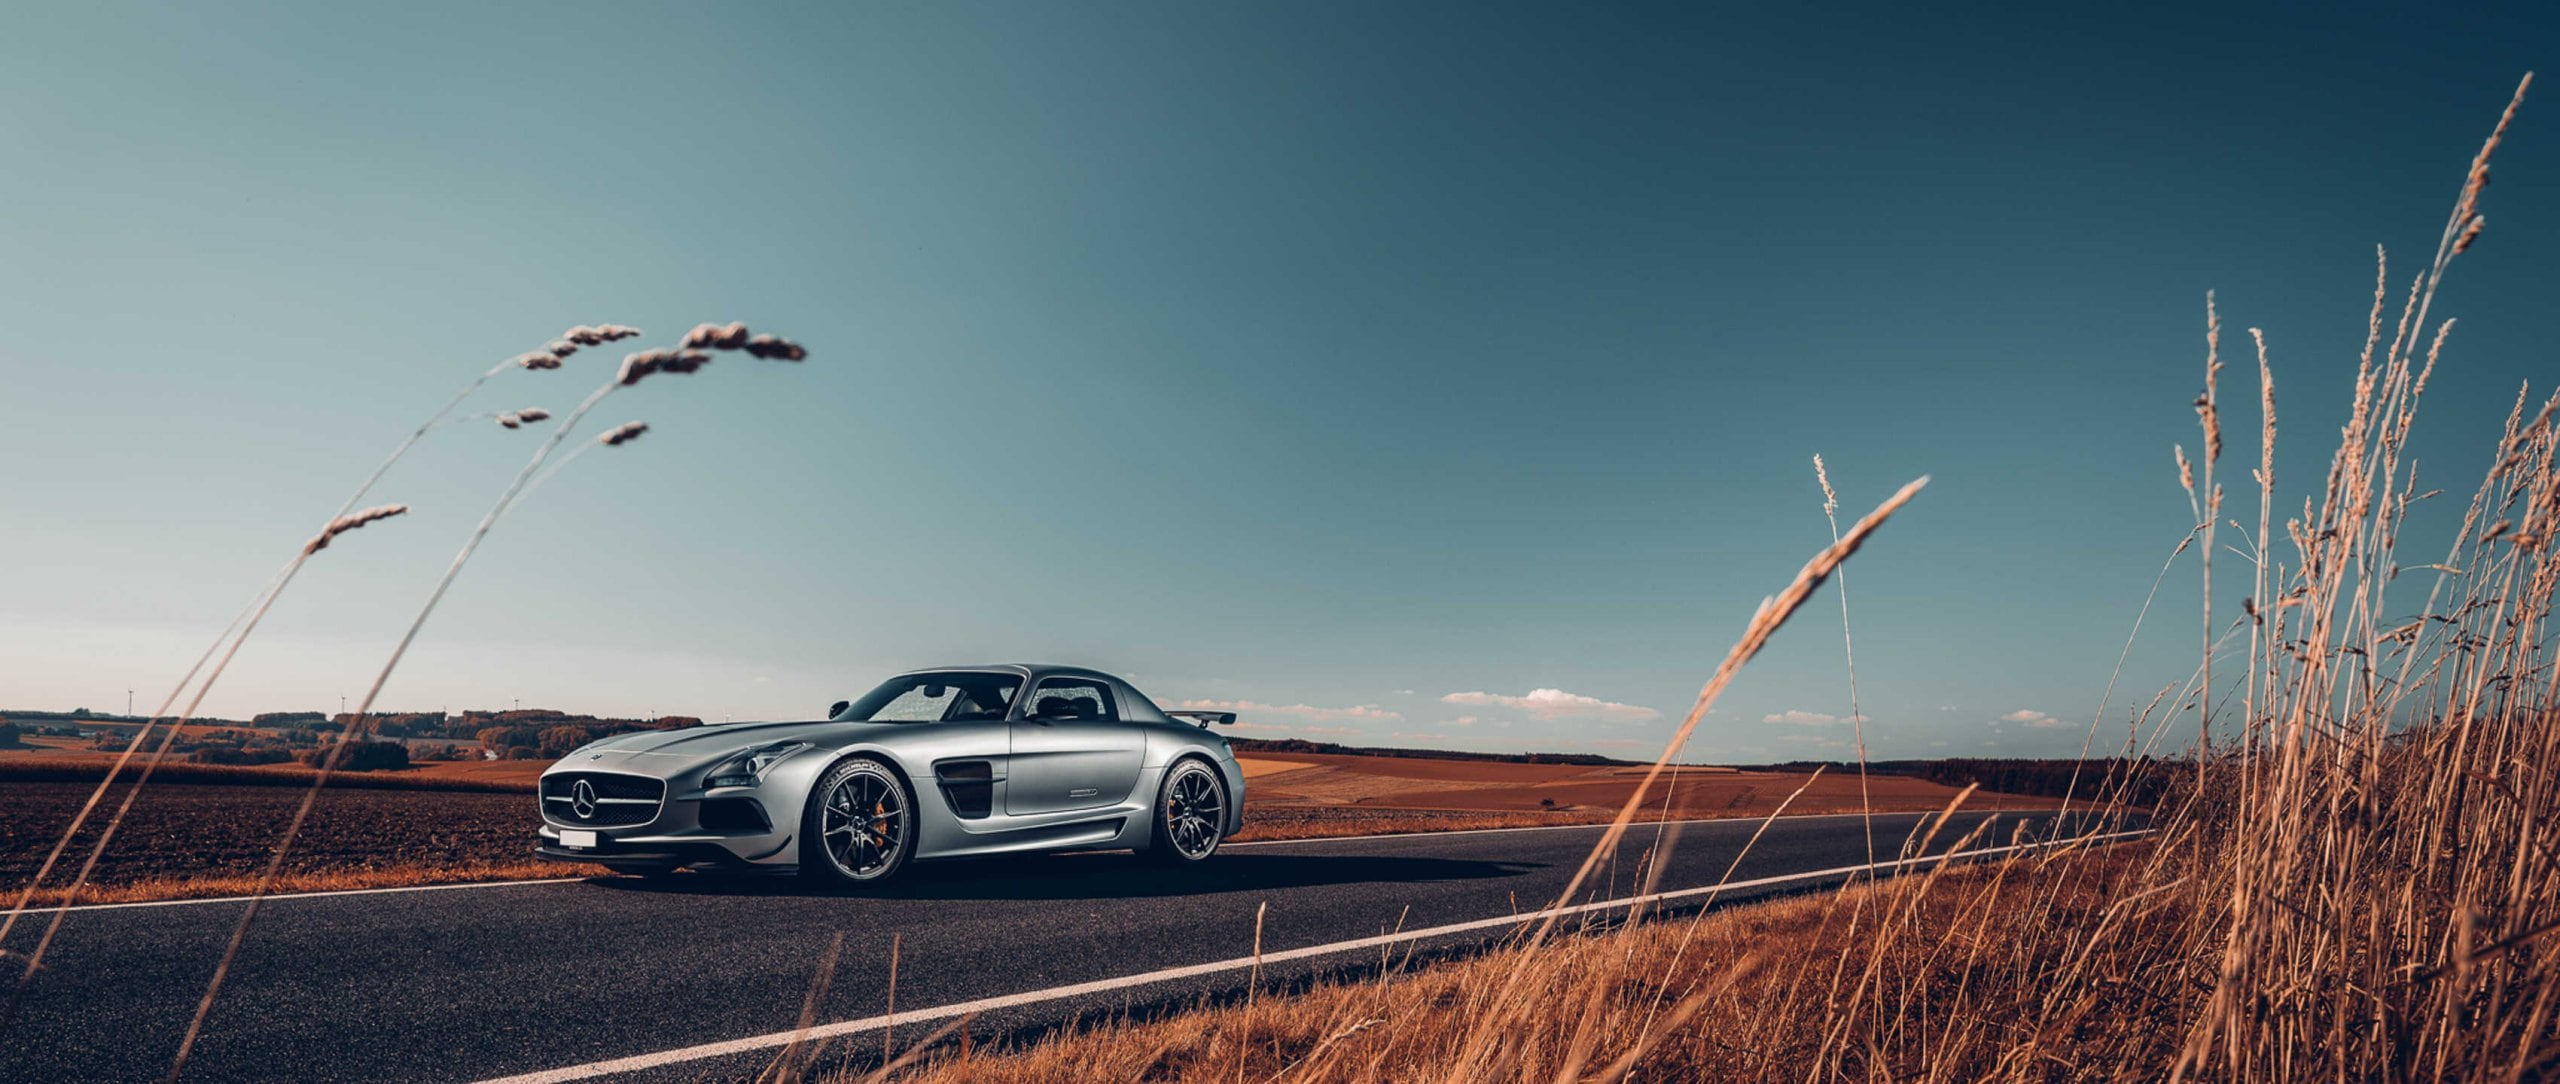 Mercedes Benz Sls Amg Black Series Wallpaper Mbsocialcar